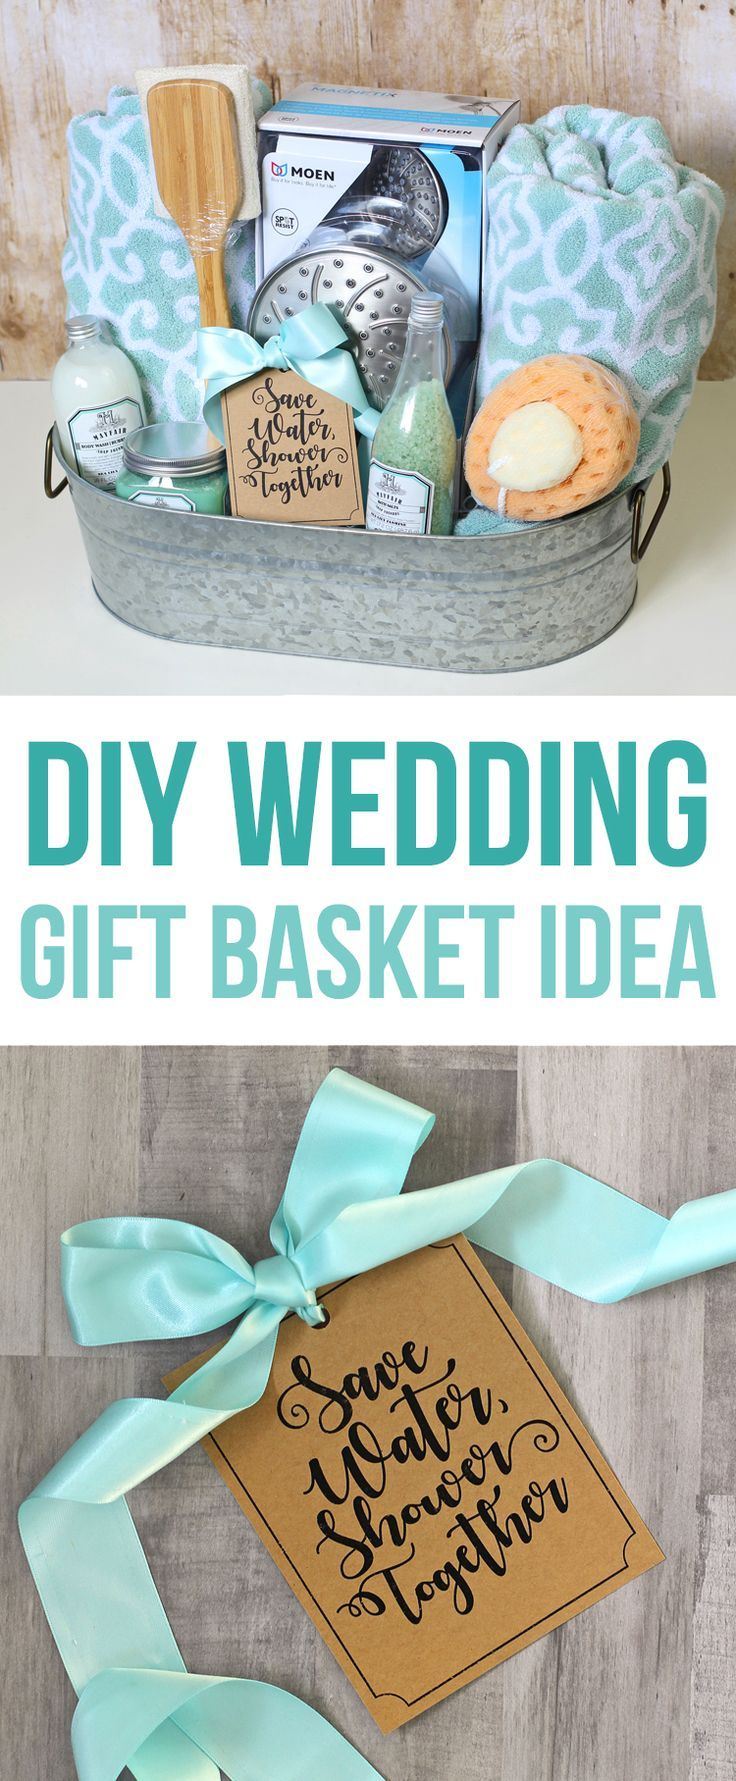 This DIY Wedding Gift Basket Idea Has A Shower Theme And Includes Bath Towels A Luxury Shower